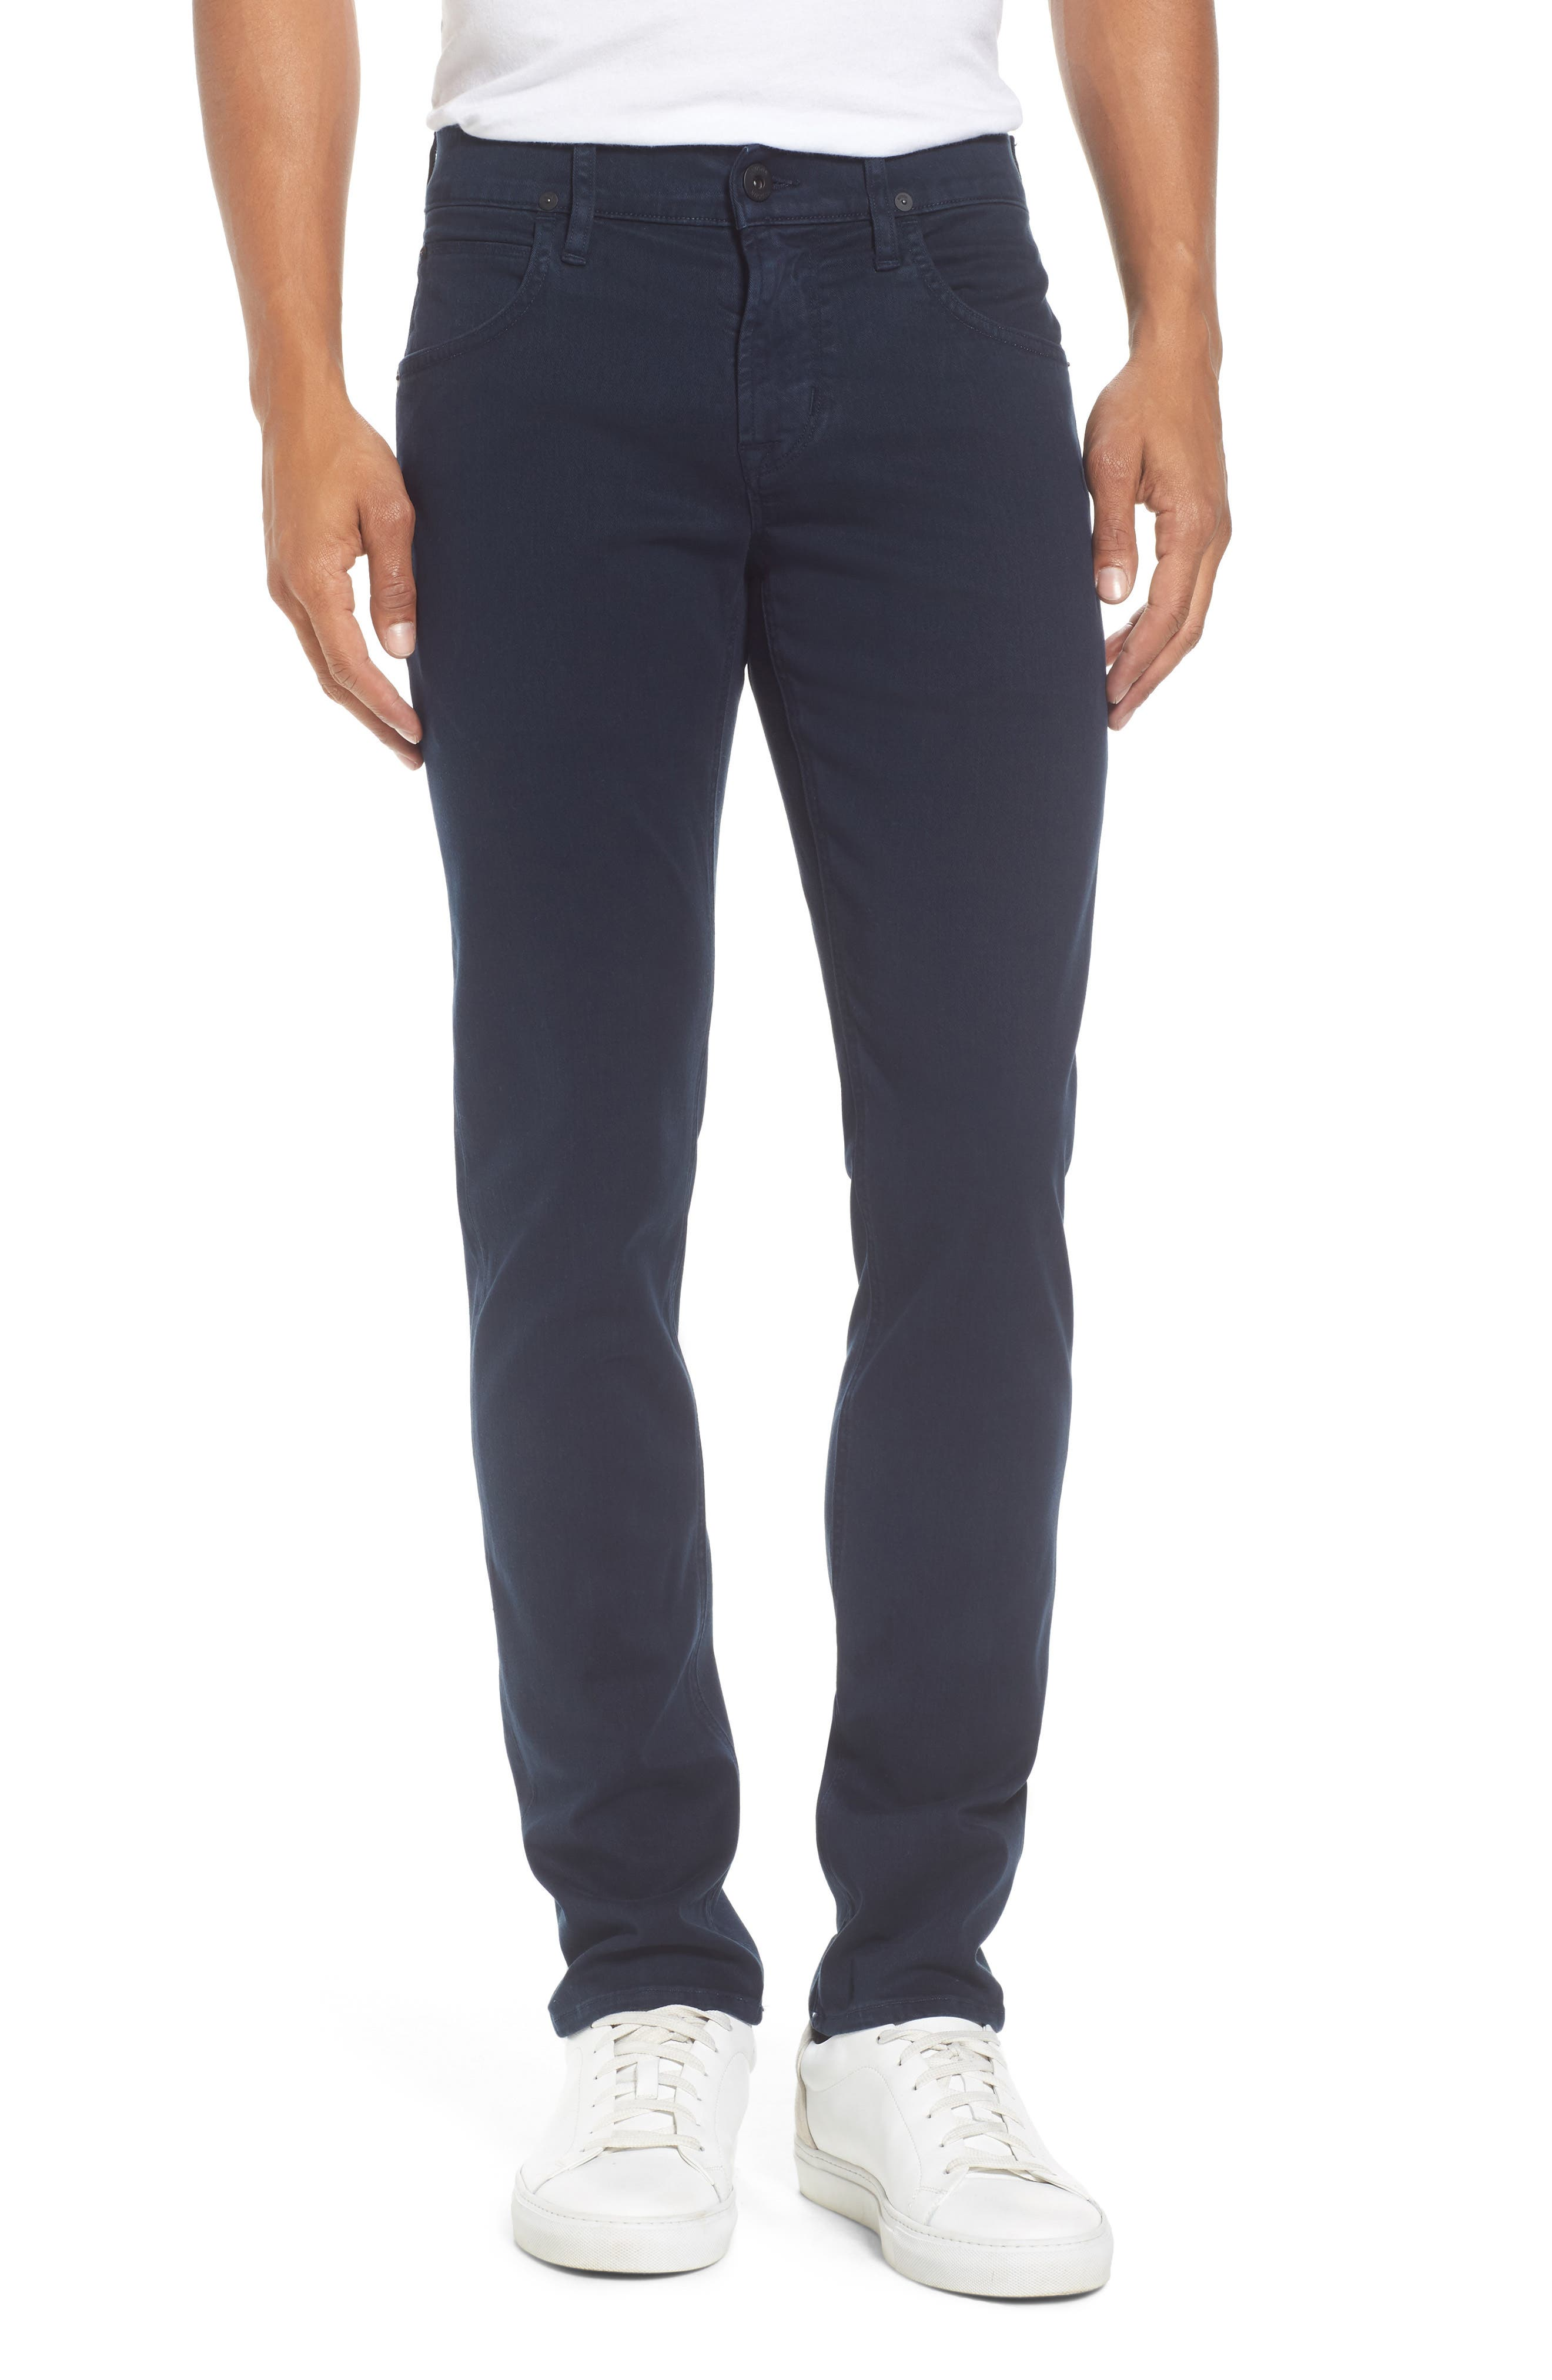 Blake Slim Fit Jeans,                         Main,                         color, Polar